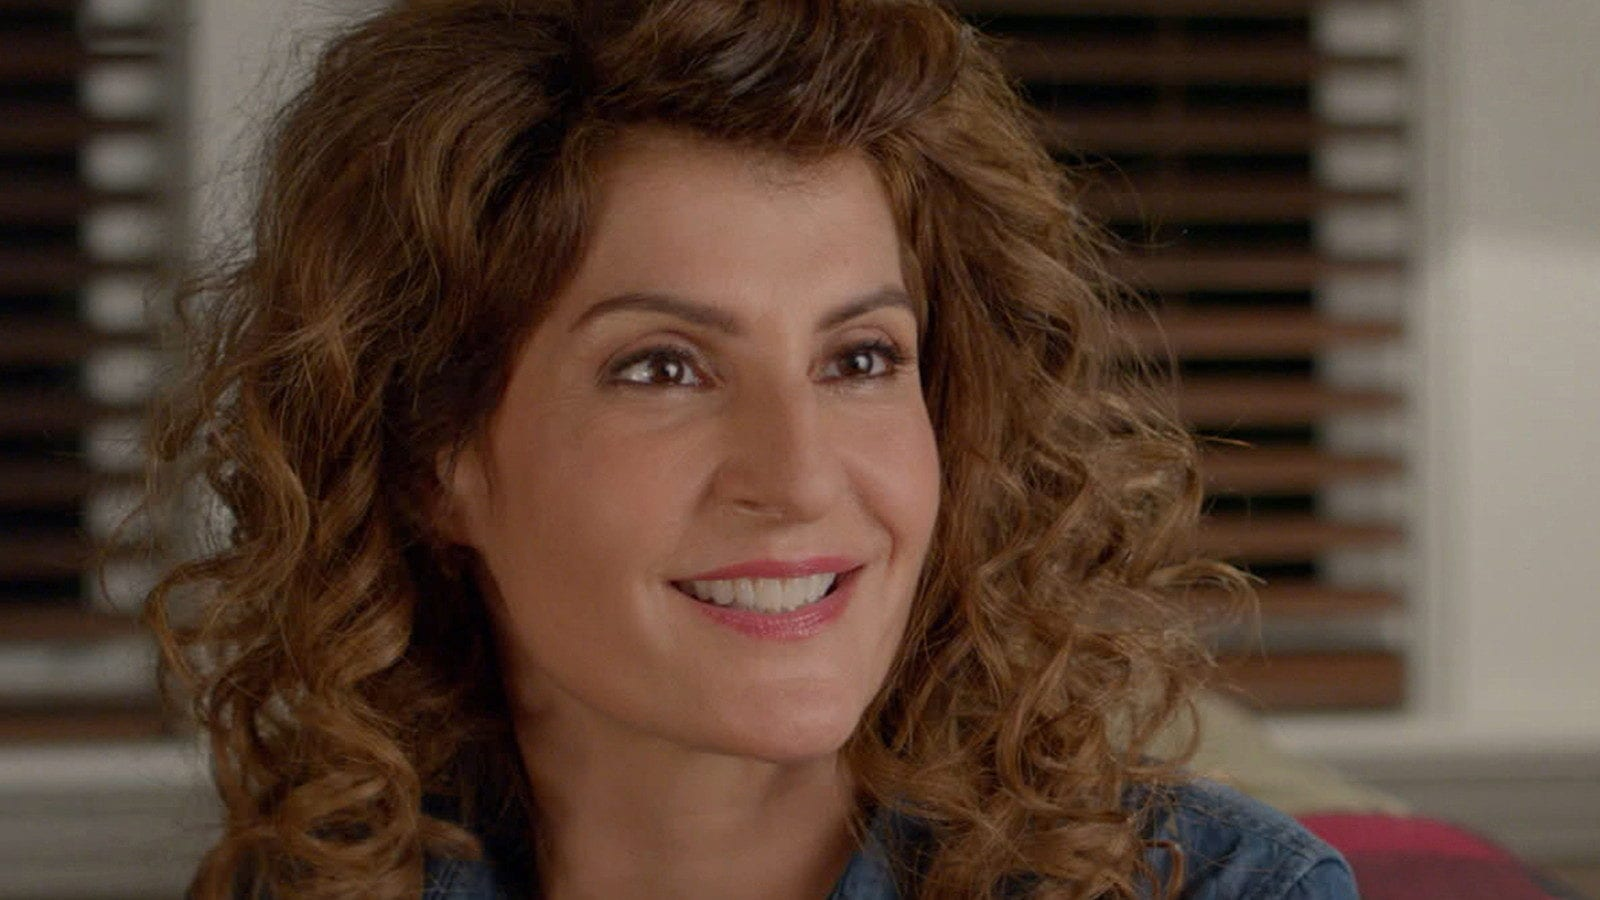 Nia Vardalos Wallpapers hd